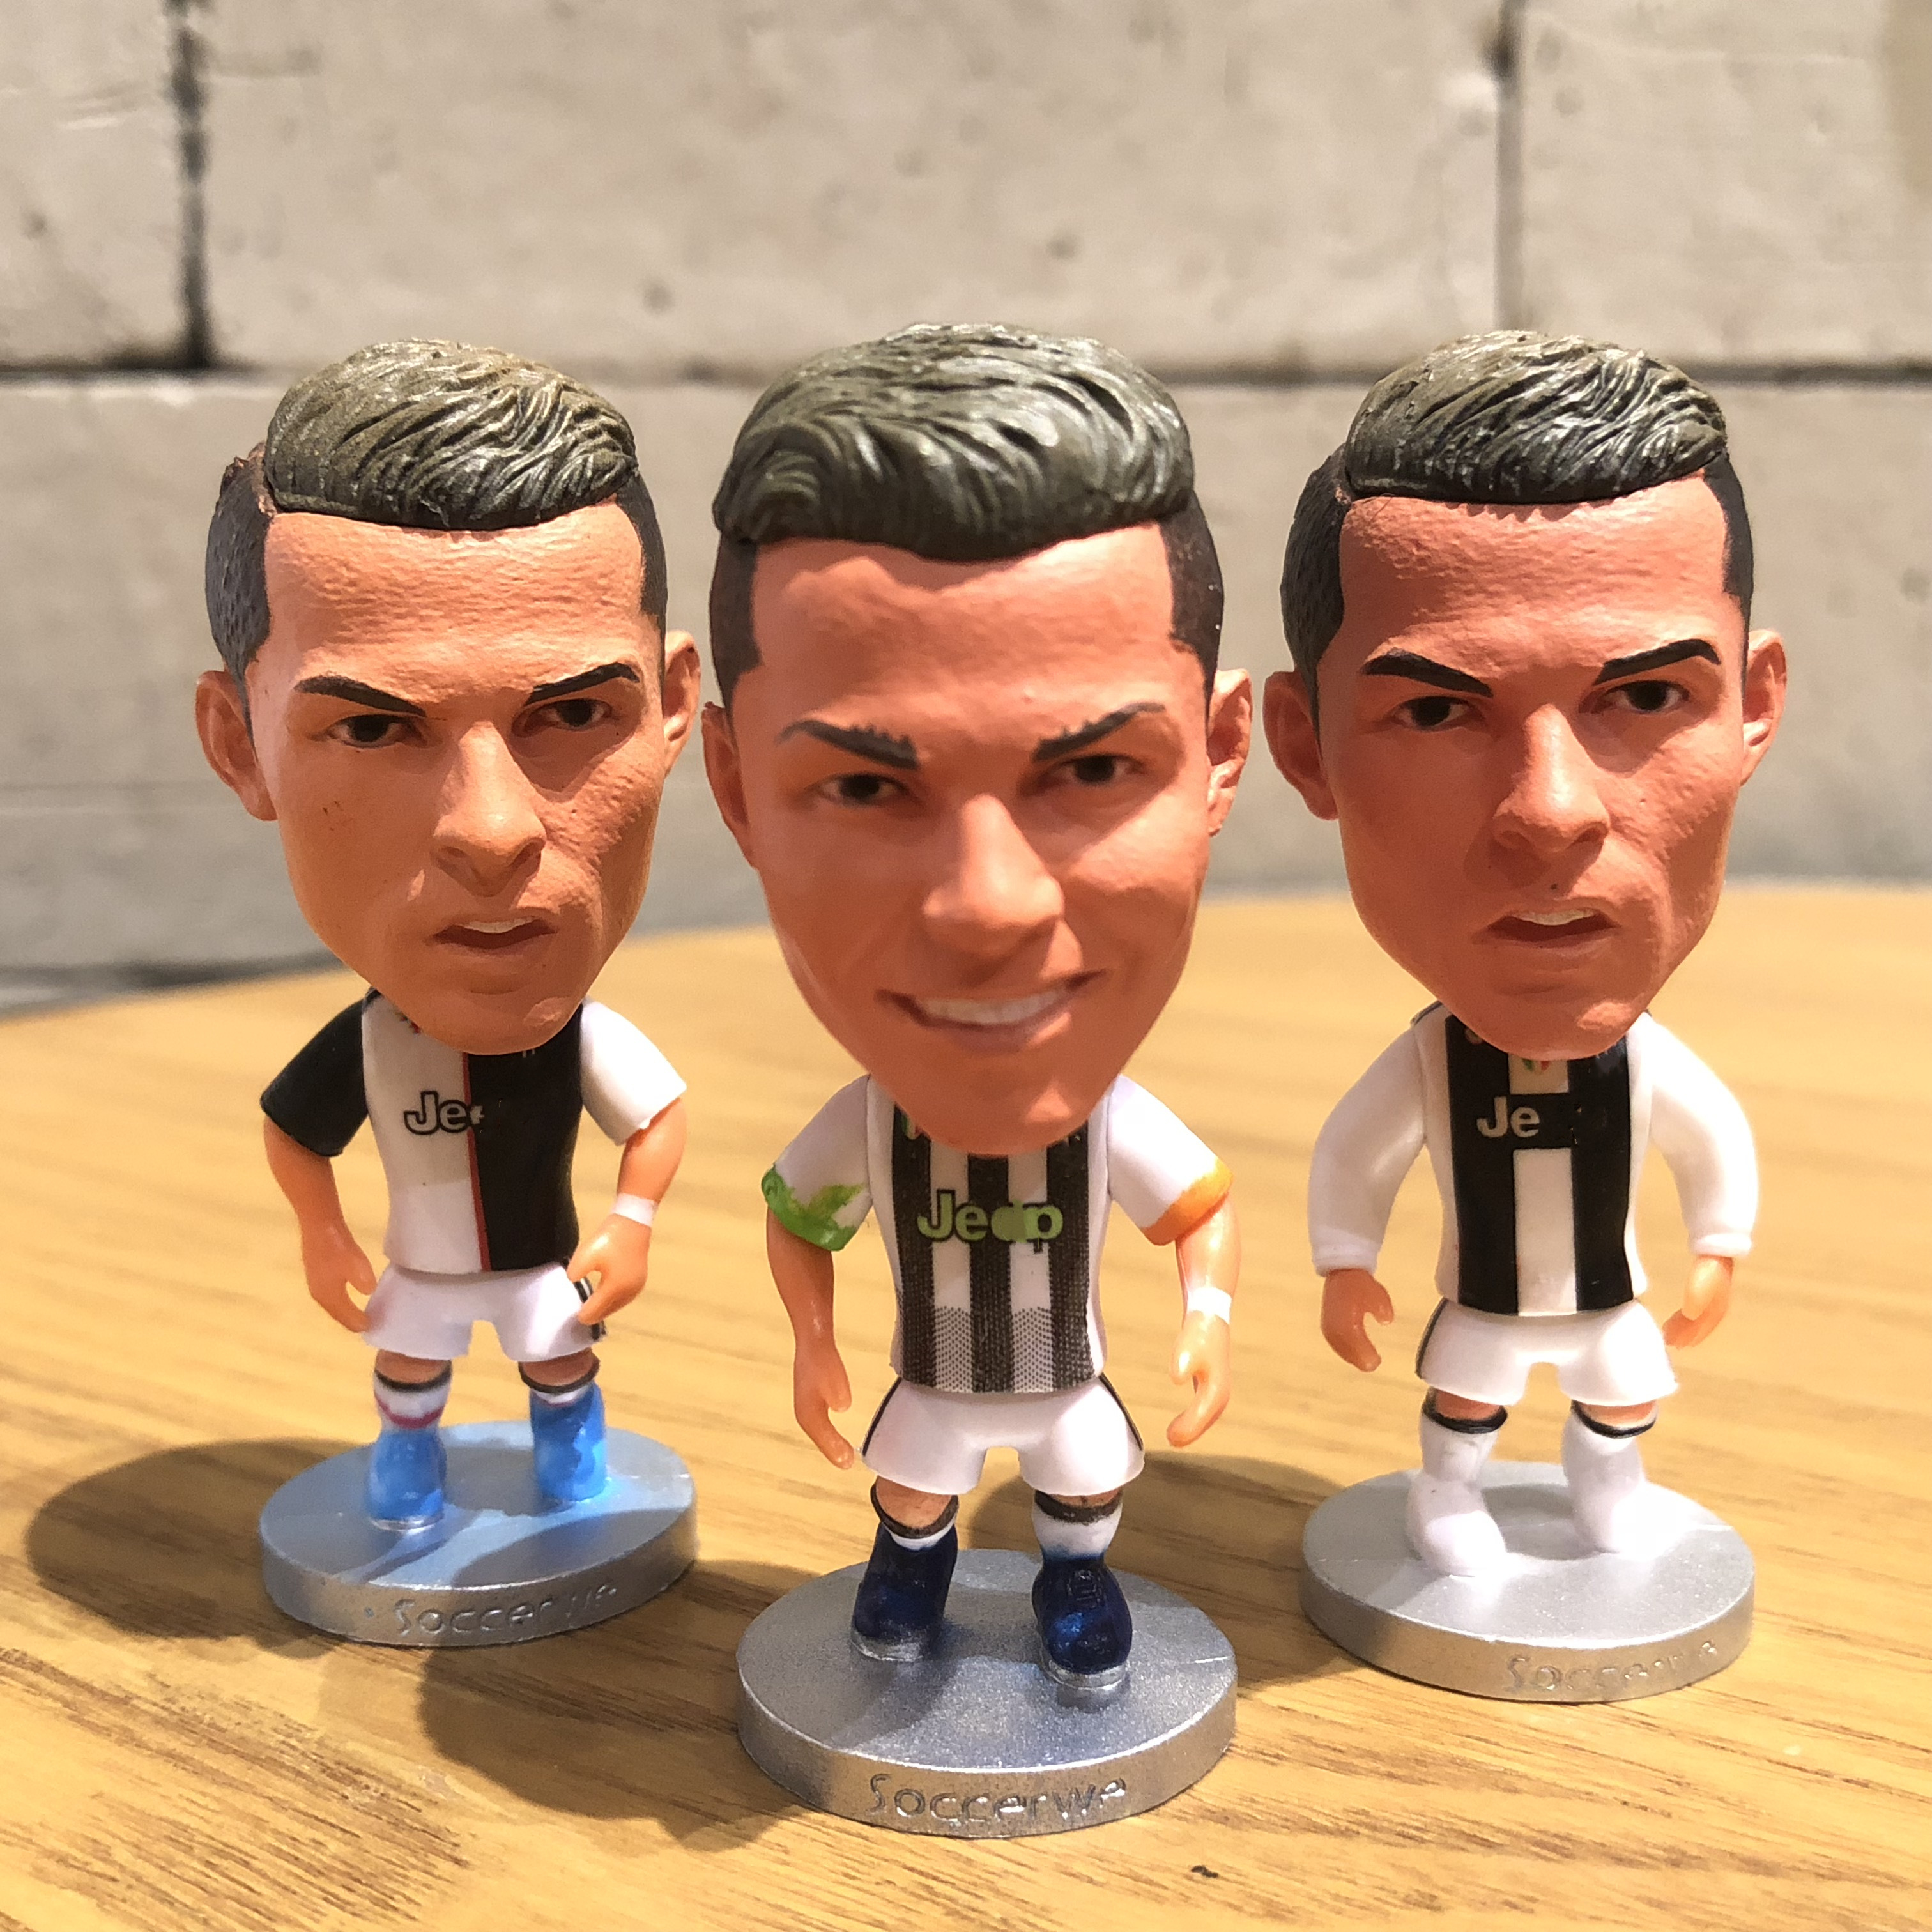 1 Piece Football Star Ronaldo 2020 Resin Doll Action Figure 6.5 Cm Mini Toy Collectible Gift